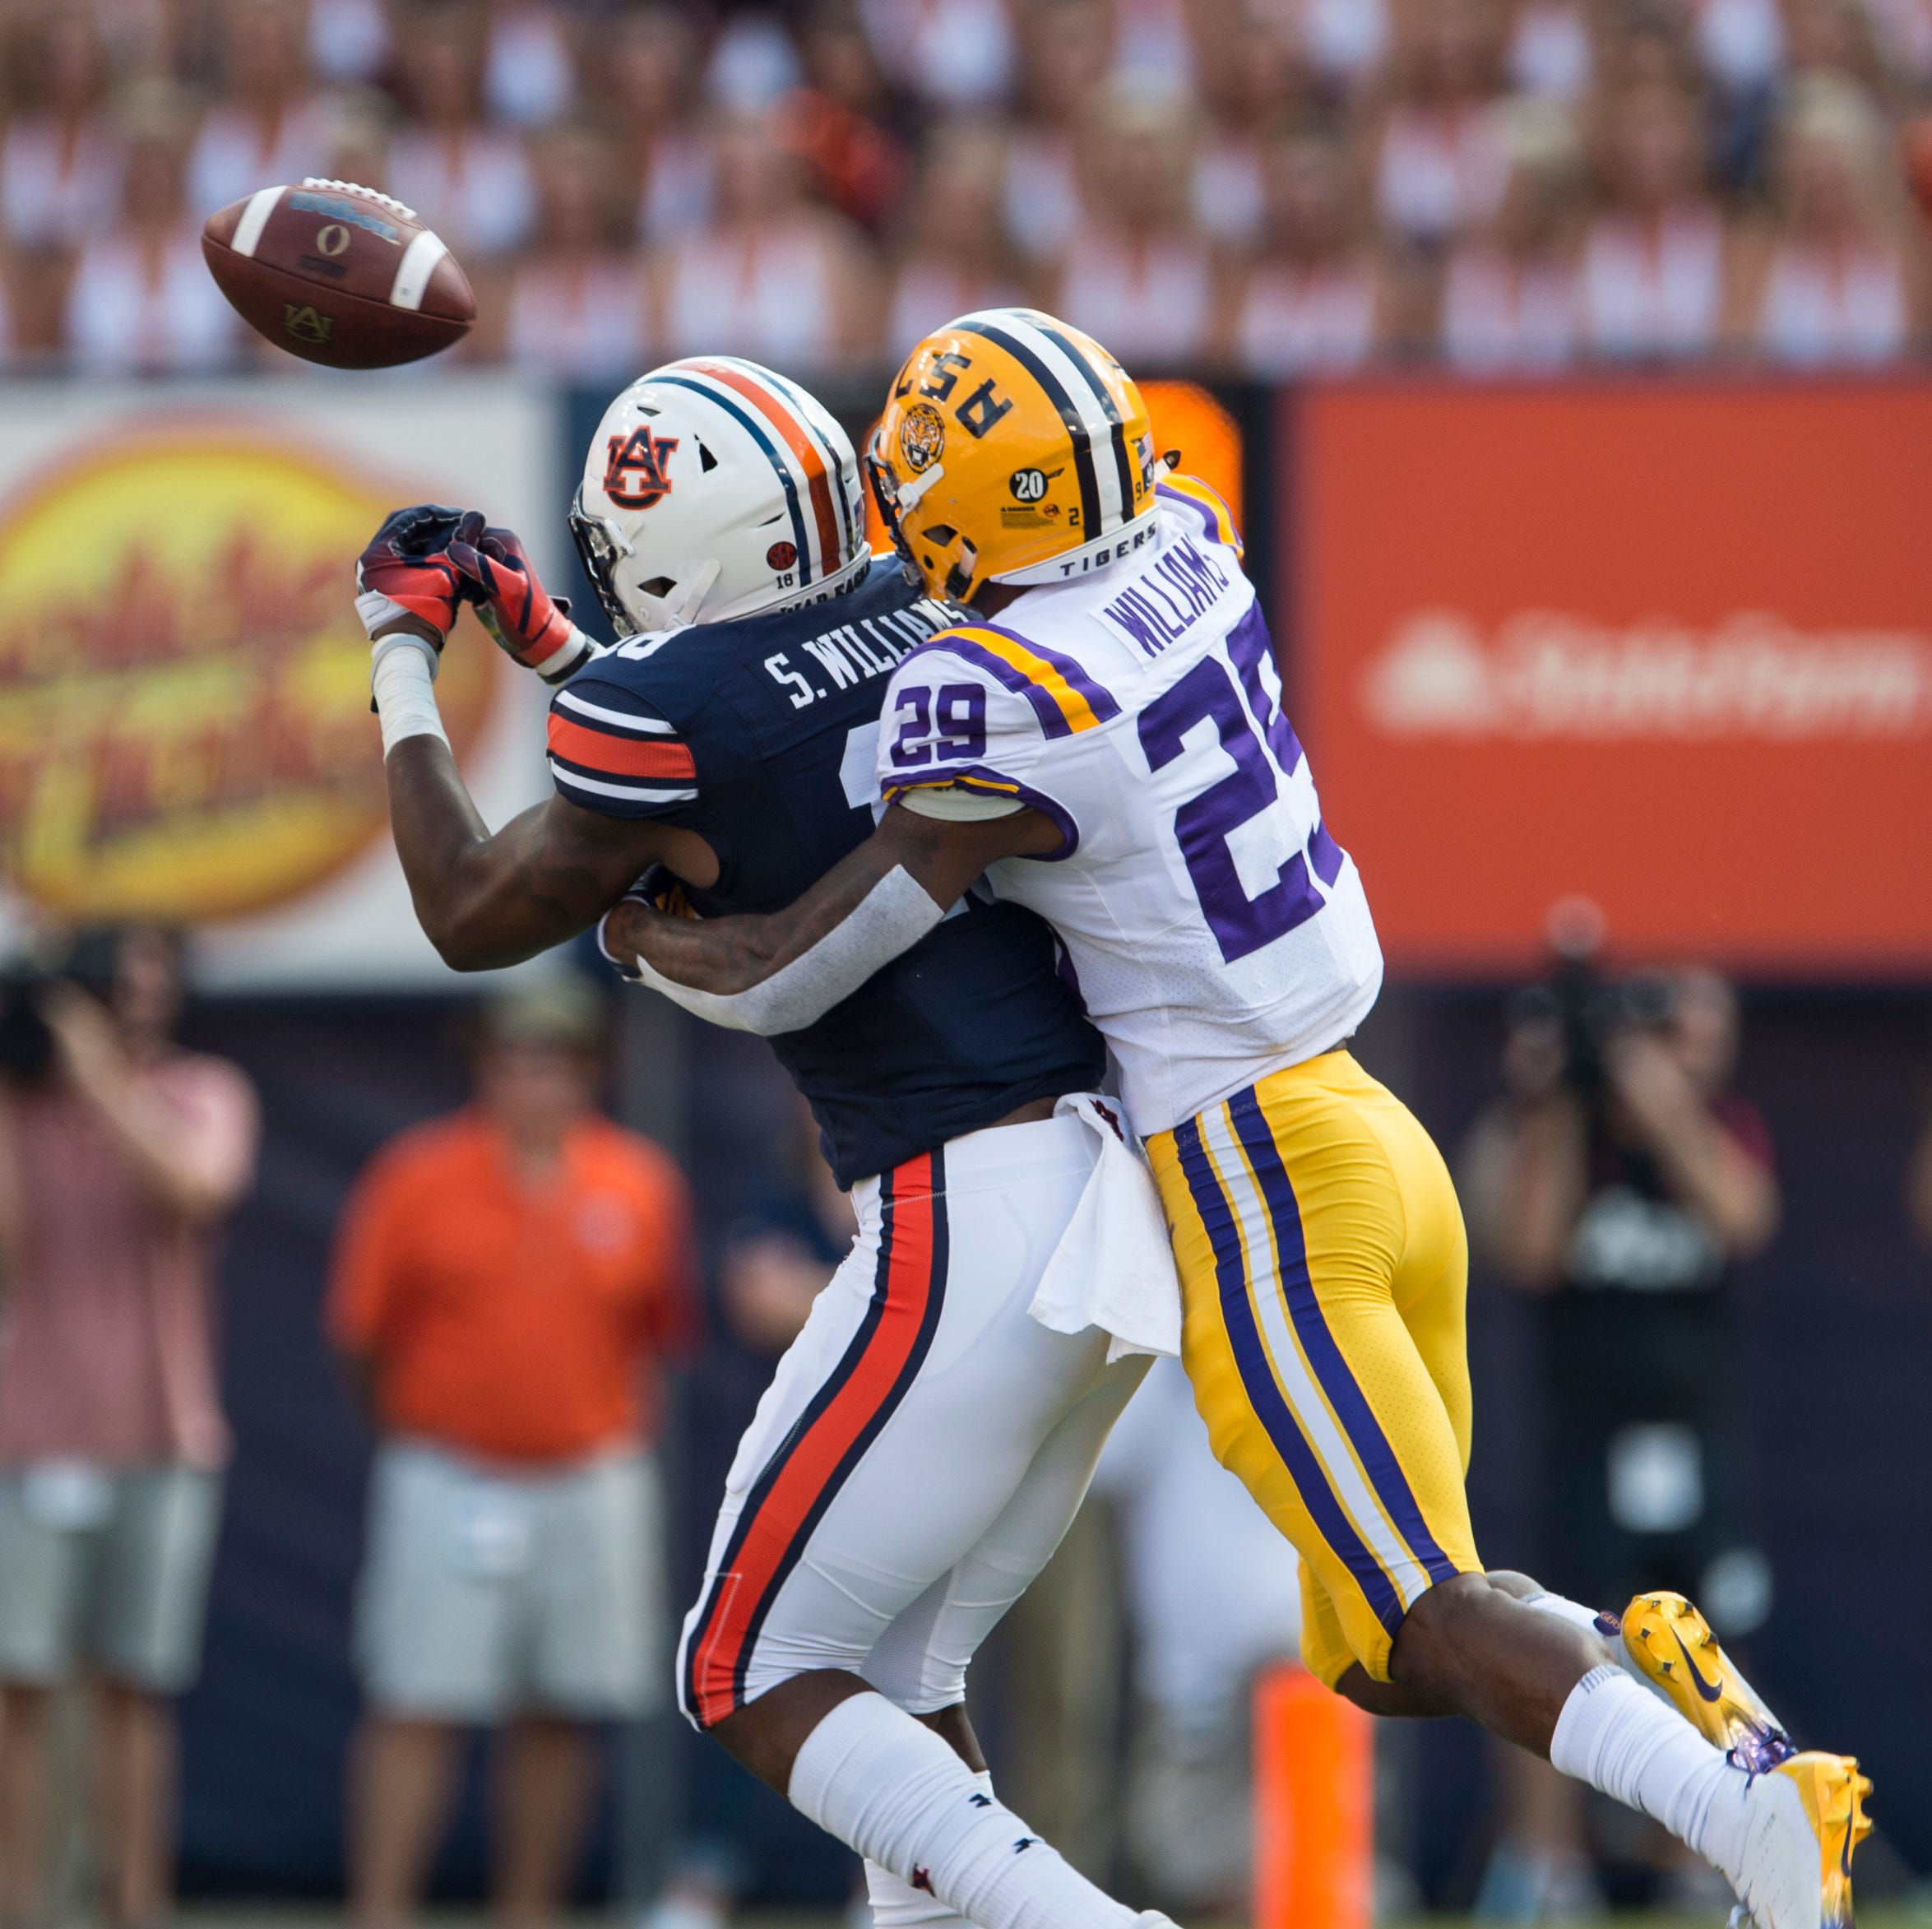 Auburn's Seth Williams (18) misses a catch guarded by LSU's Greedy Williams (29) at Jordan-Hare Stadium in Auburn, Ala., on Saturday, Sept. 15, 2018. LSU defeated Auburn 22-21.